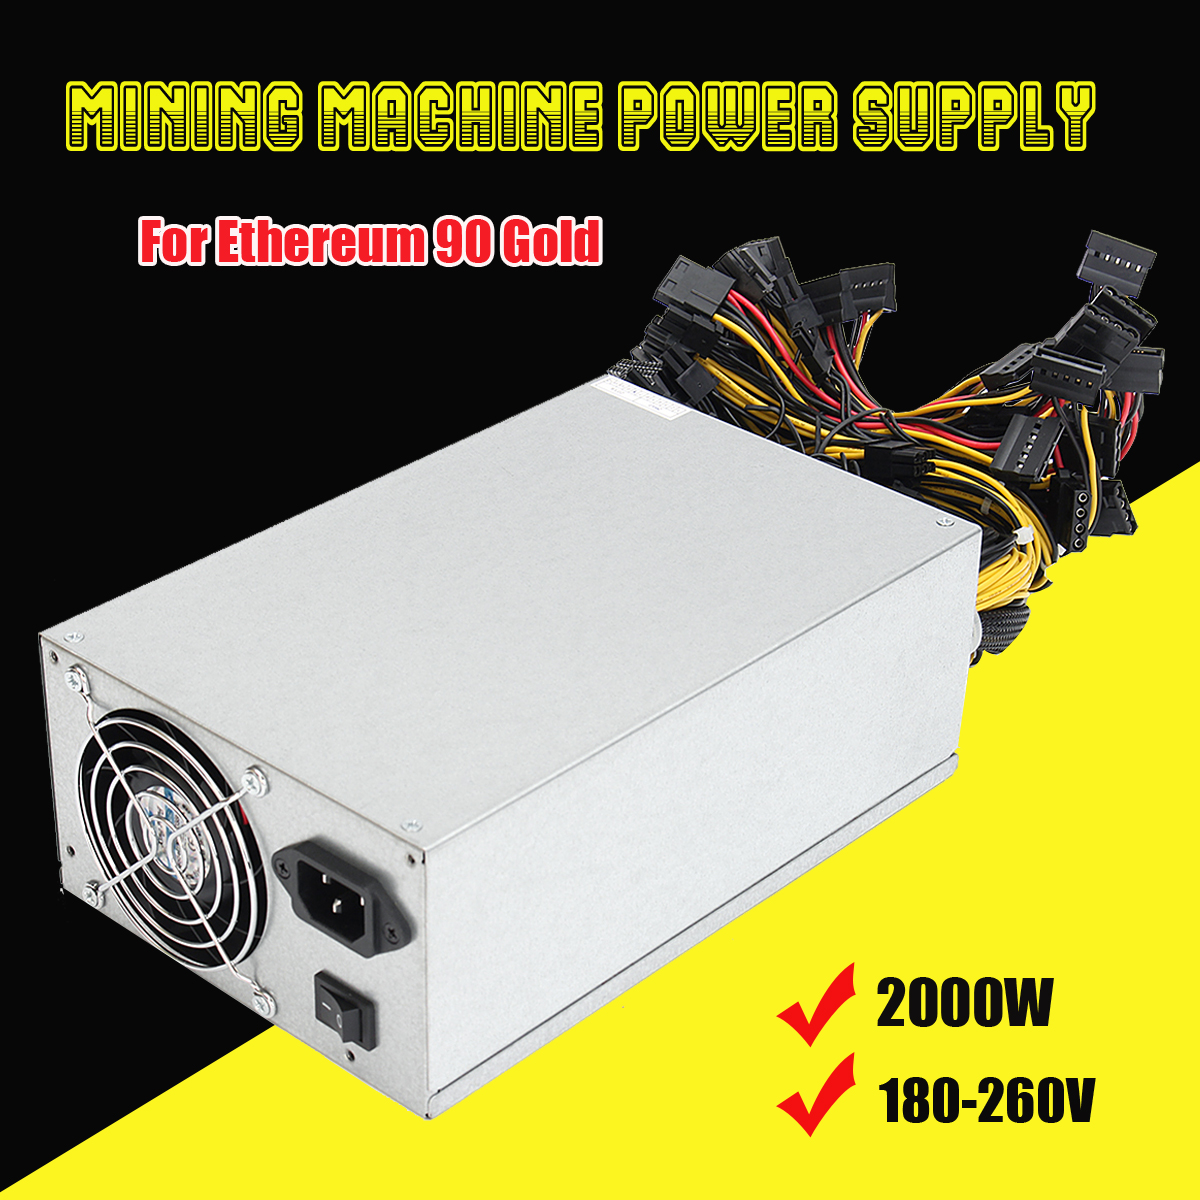 2000W Miner Mining Machine Power Supply For Ethereum For BTC 90% High Efficiency Gold 180-260V 8GPU Graphics Card Power Supplies2000W Miner Mining Machine Power Supply For Ethereum For BTC 90% High Efficiency Gold 180-260V 8GPU Graphics Card Power Supplies